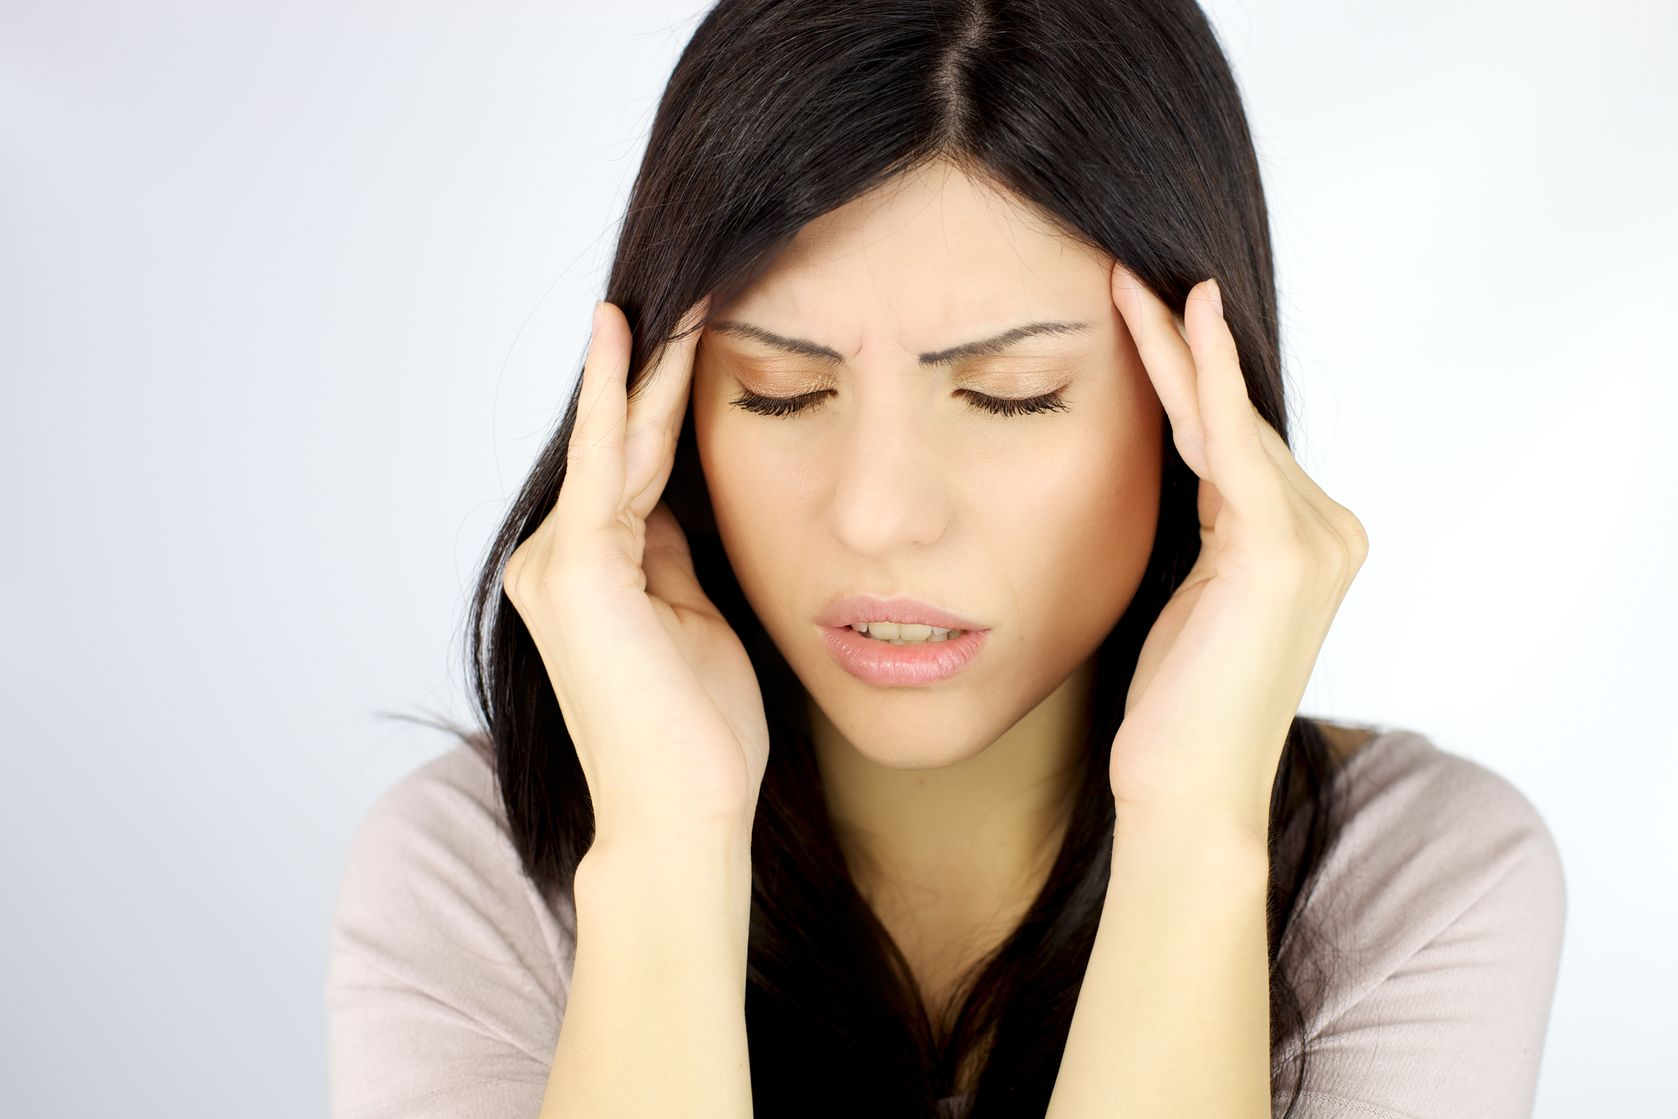 peppermint and anise essential oils both help migraine headaches